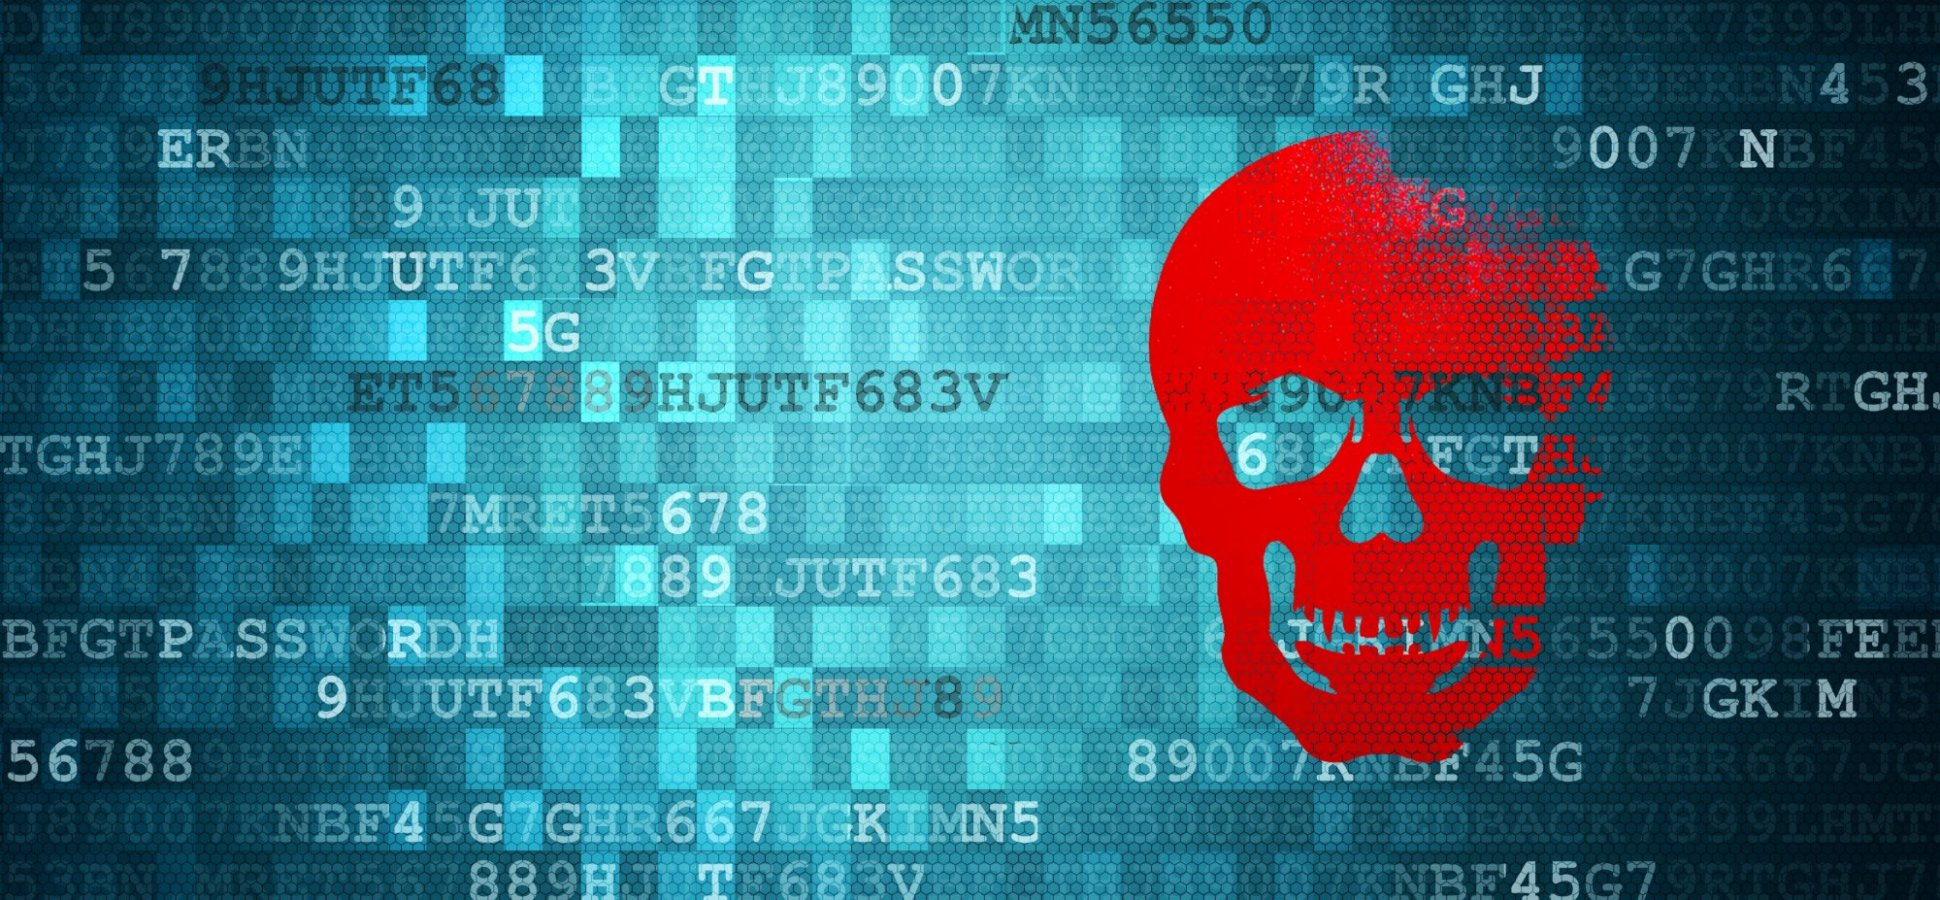 A New Android Malware Affects 25 Million Smartphones. Here's What You Need to Know About the Dangers of Open Systems